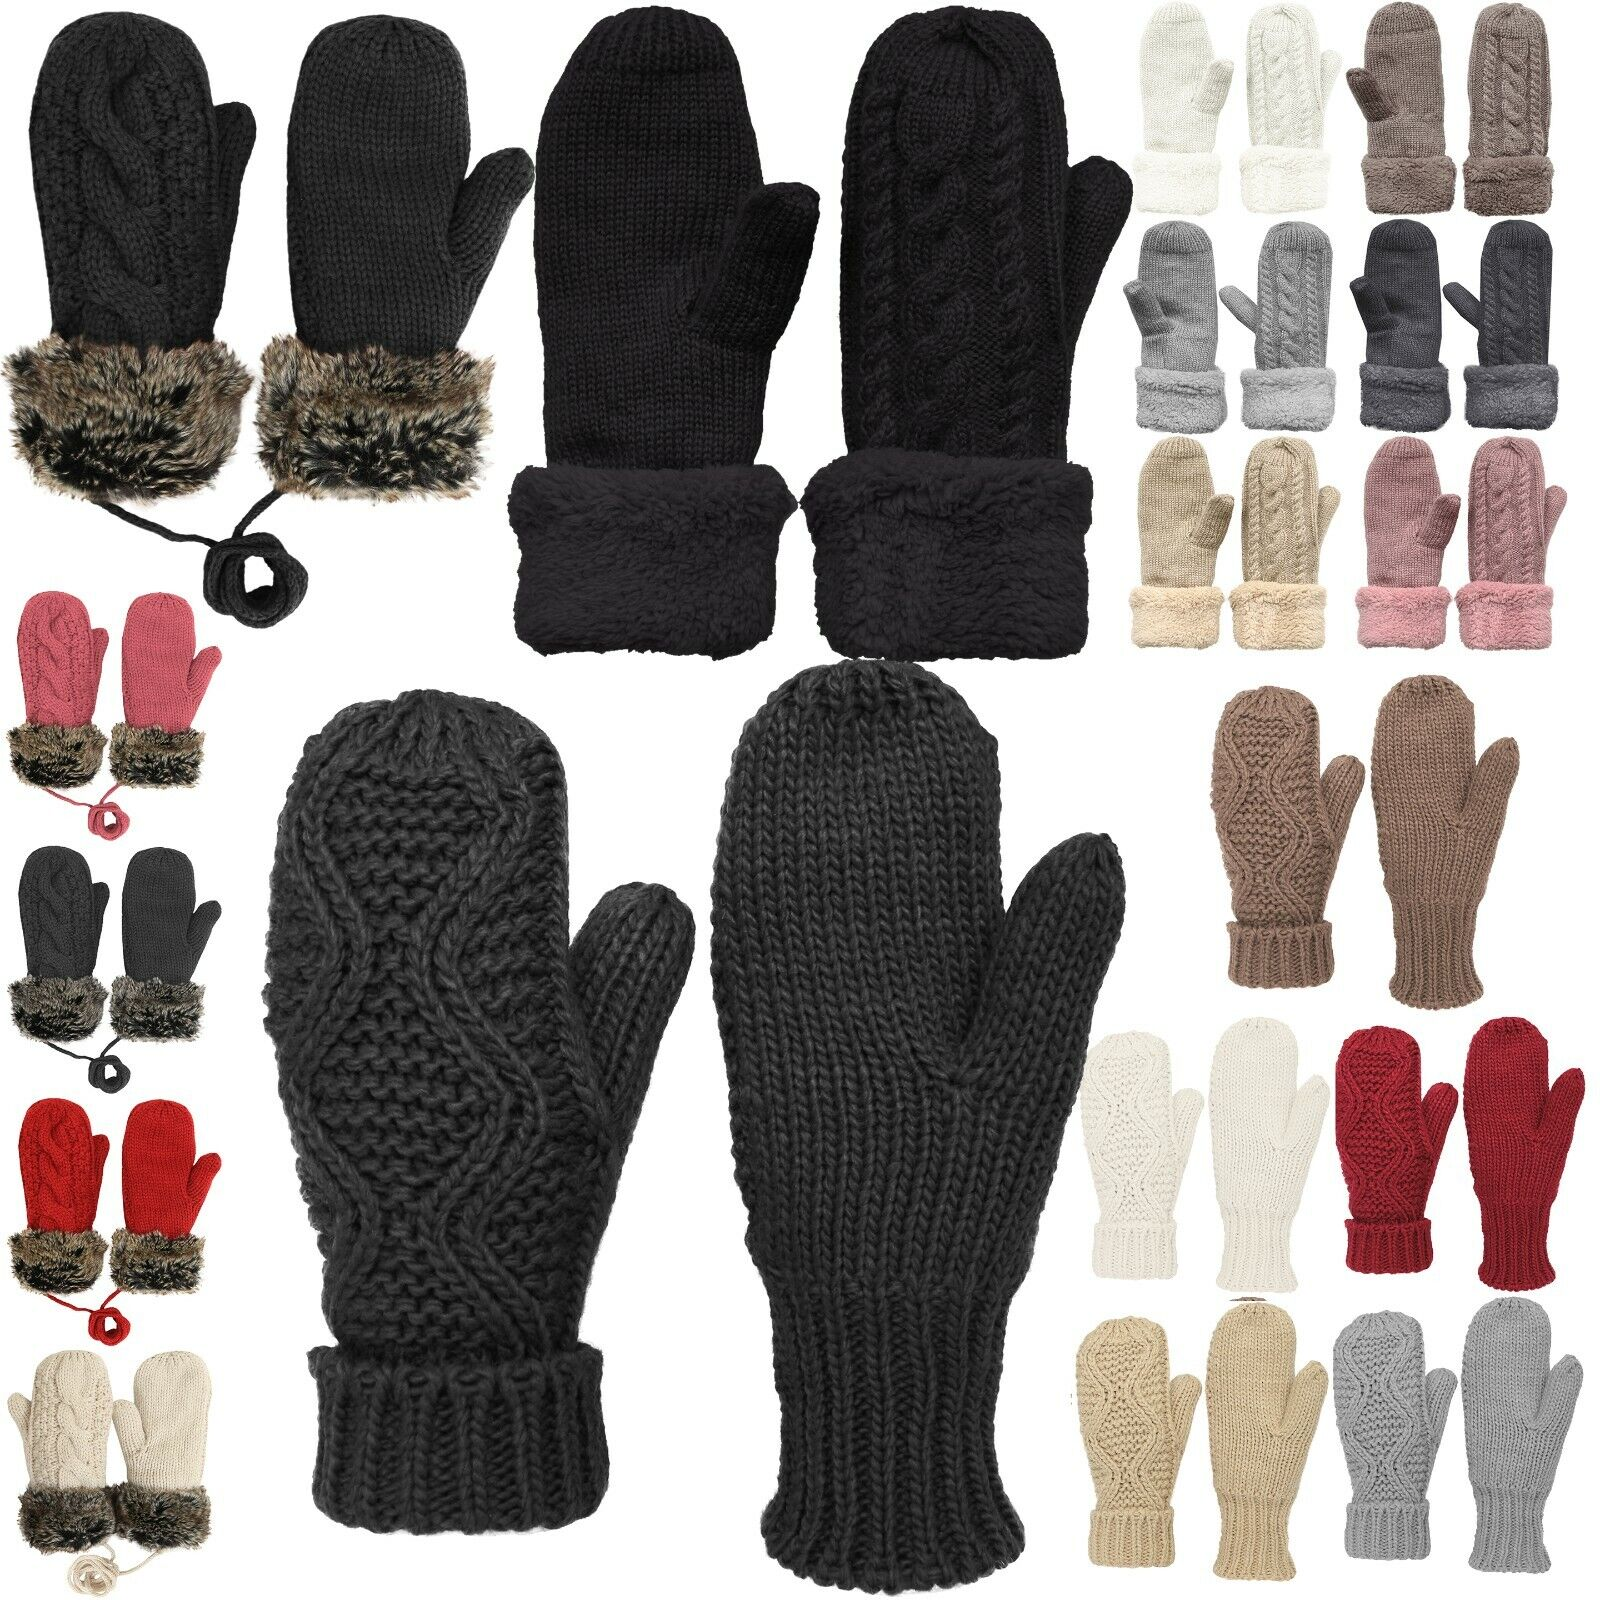 Womens Winter Warm Cuffed Knit Mittens Clothing, Shoes & Accessories